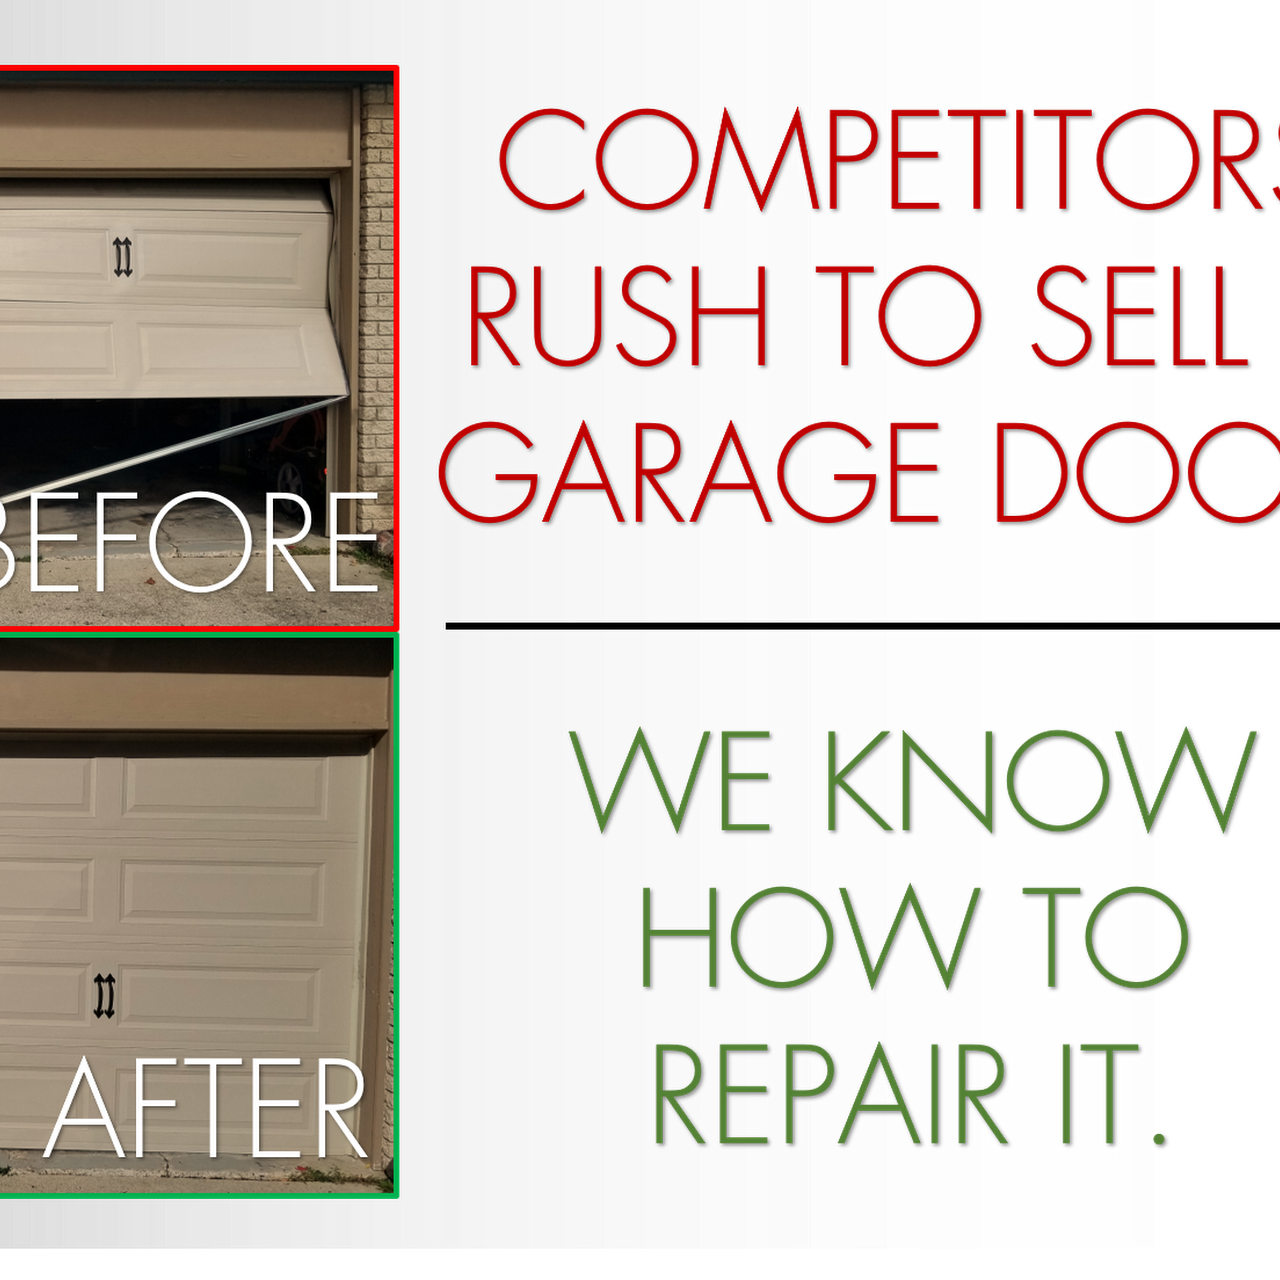 Garage Door Repair Canton Mi on garage storage, sliding door repair, garage doors product, cabinet door repair, refrigerator door repair, garage sale signs, home door repair, this old house door repair, shower door repair, backyard door repair, garage kits, garage ideas, diy garage repair, auto door repair, garage walls, interior door repair, pocket door repair, garage car repair, anderson storm door repair, door jamb repair,